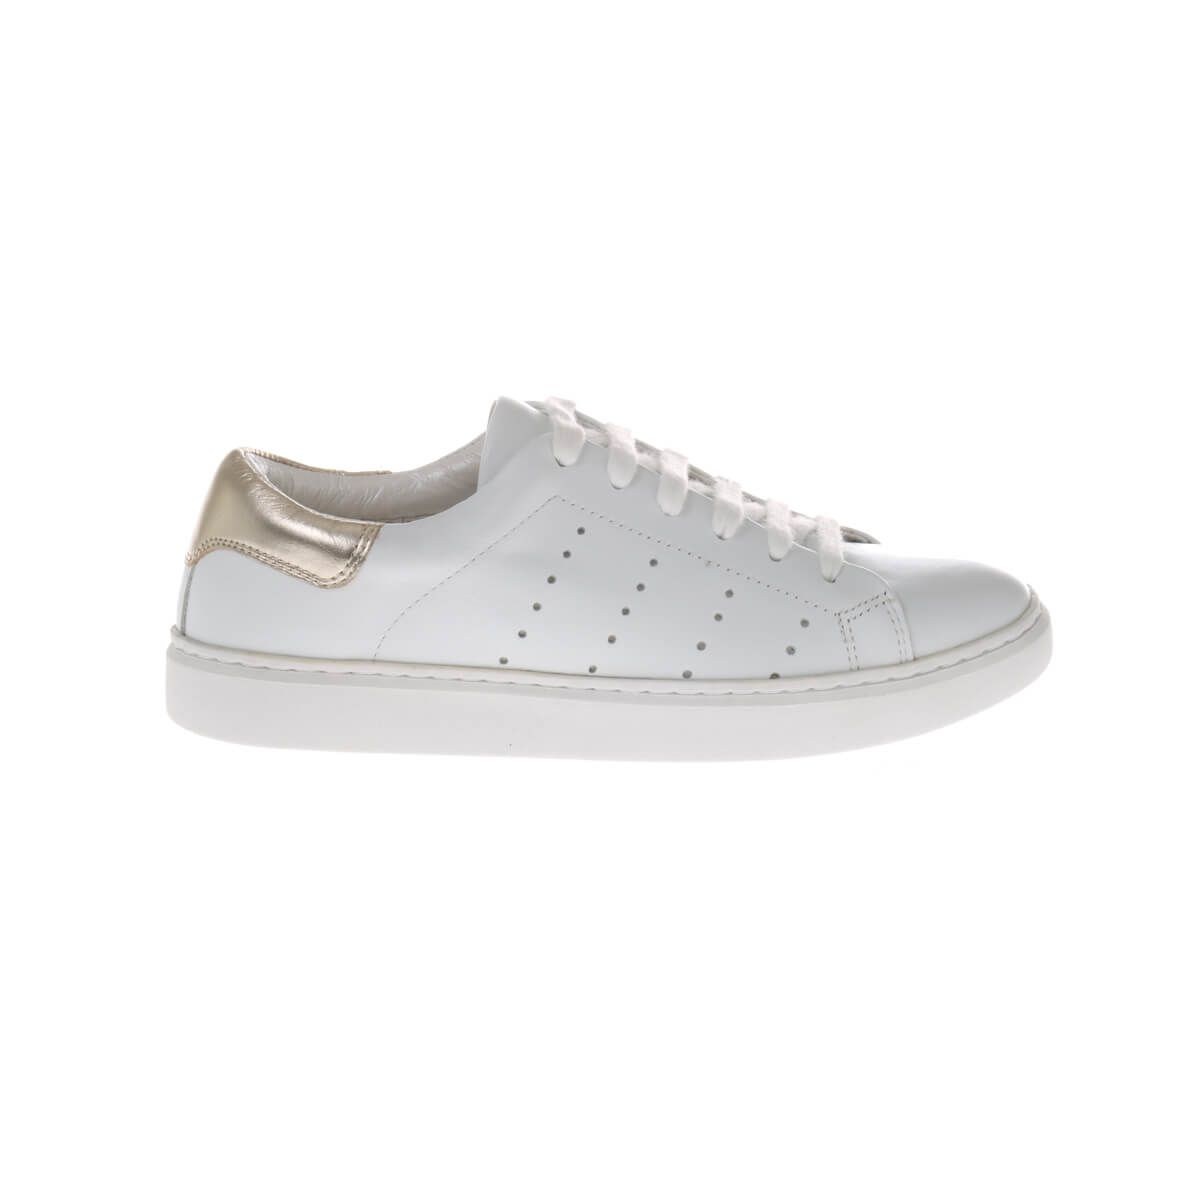 Cartoux C1253 Sneakers Wit Goud